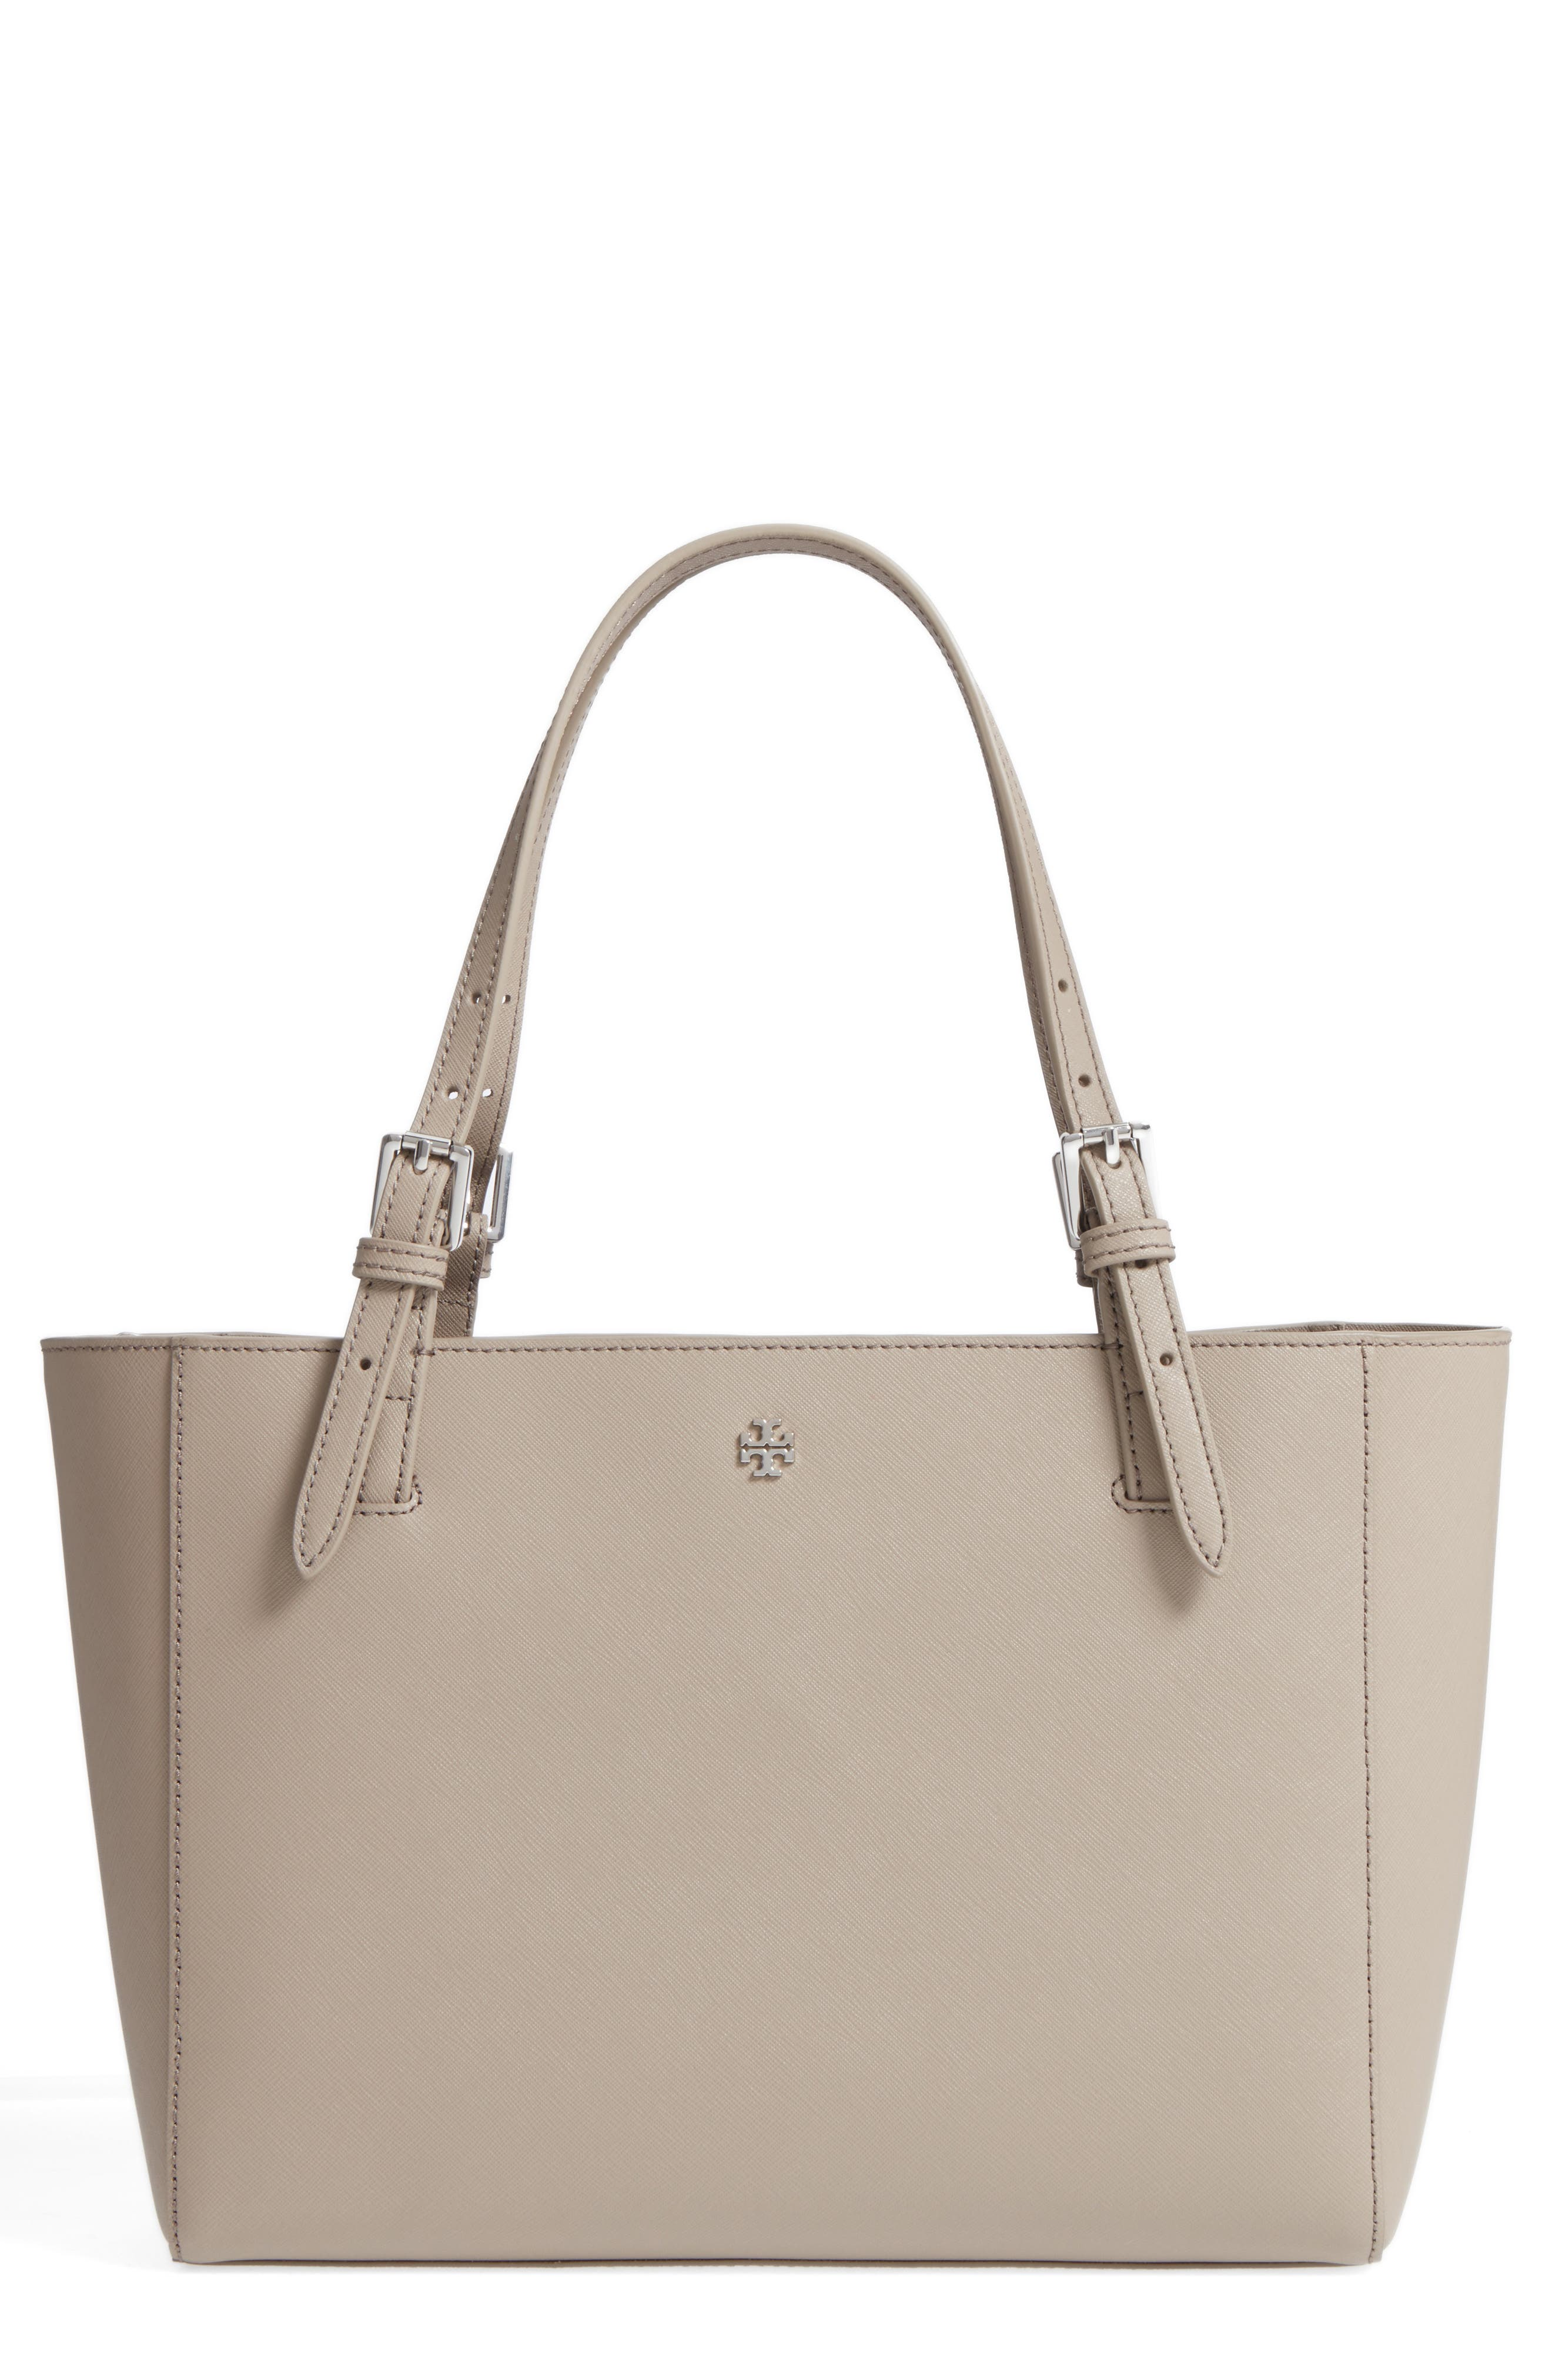 TORY BURCH, 'Small York' Saffiano Leather Buckle Tote, Main thumbnail 1, color, 020